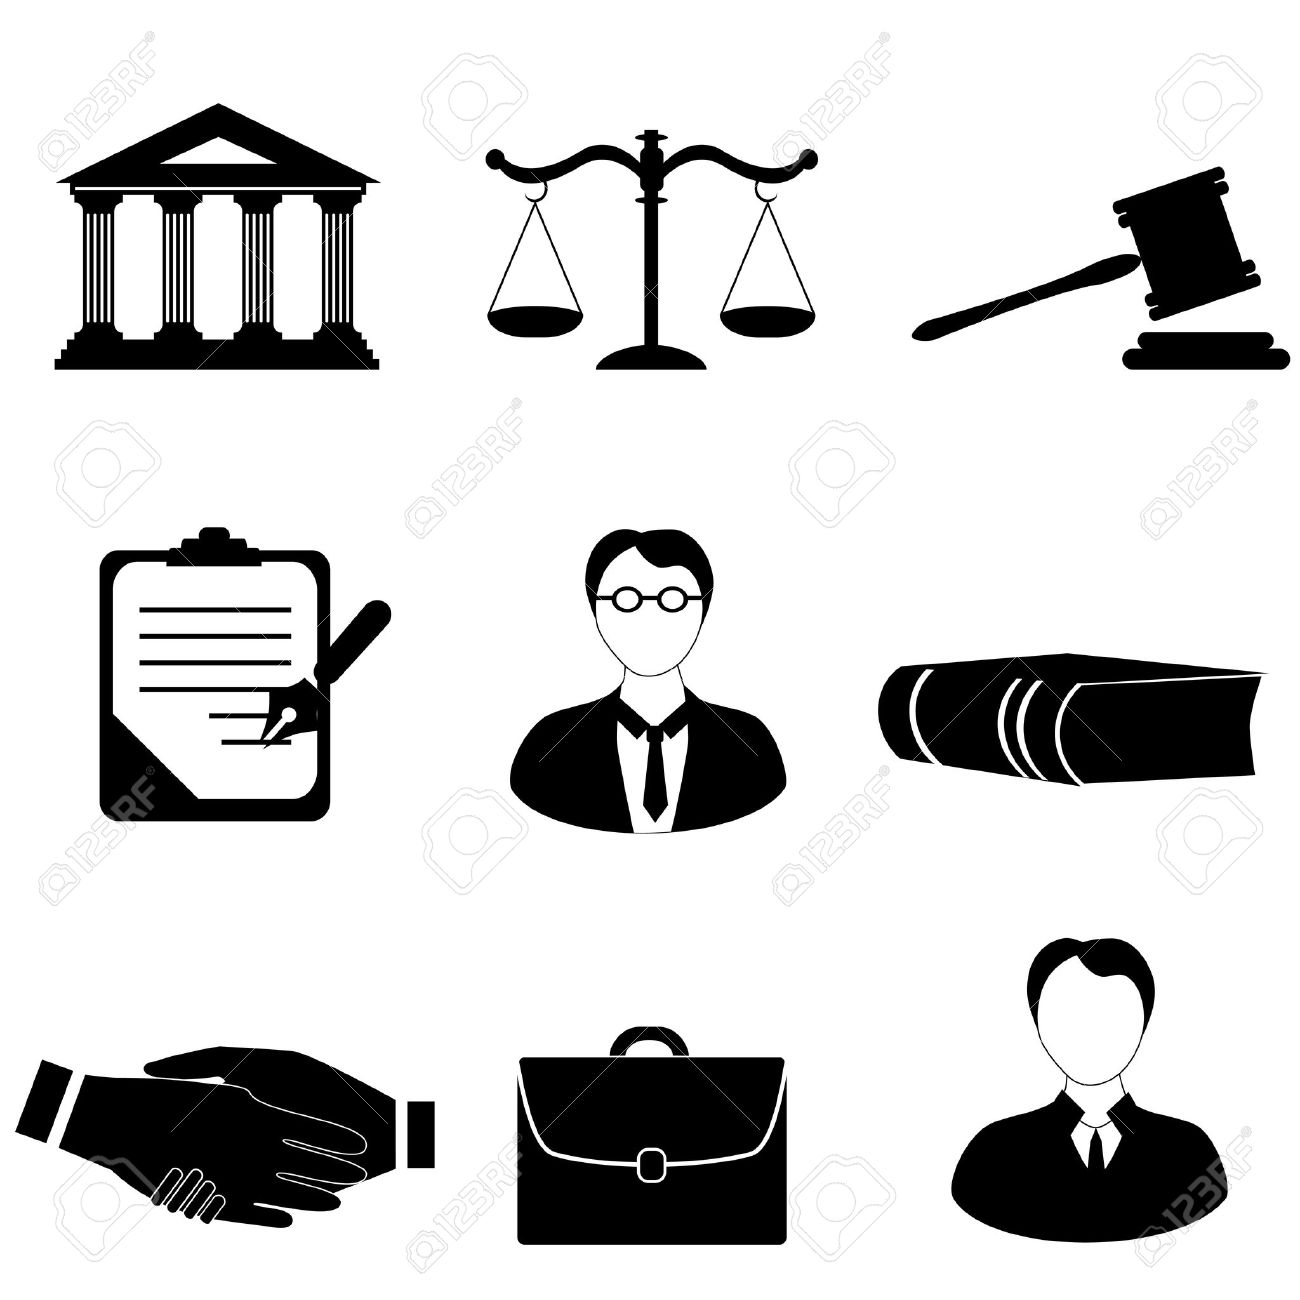 Law, Legal And Justice Related Symbols Royalty Free Cliparts ...